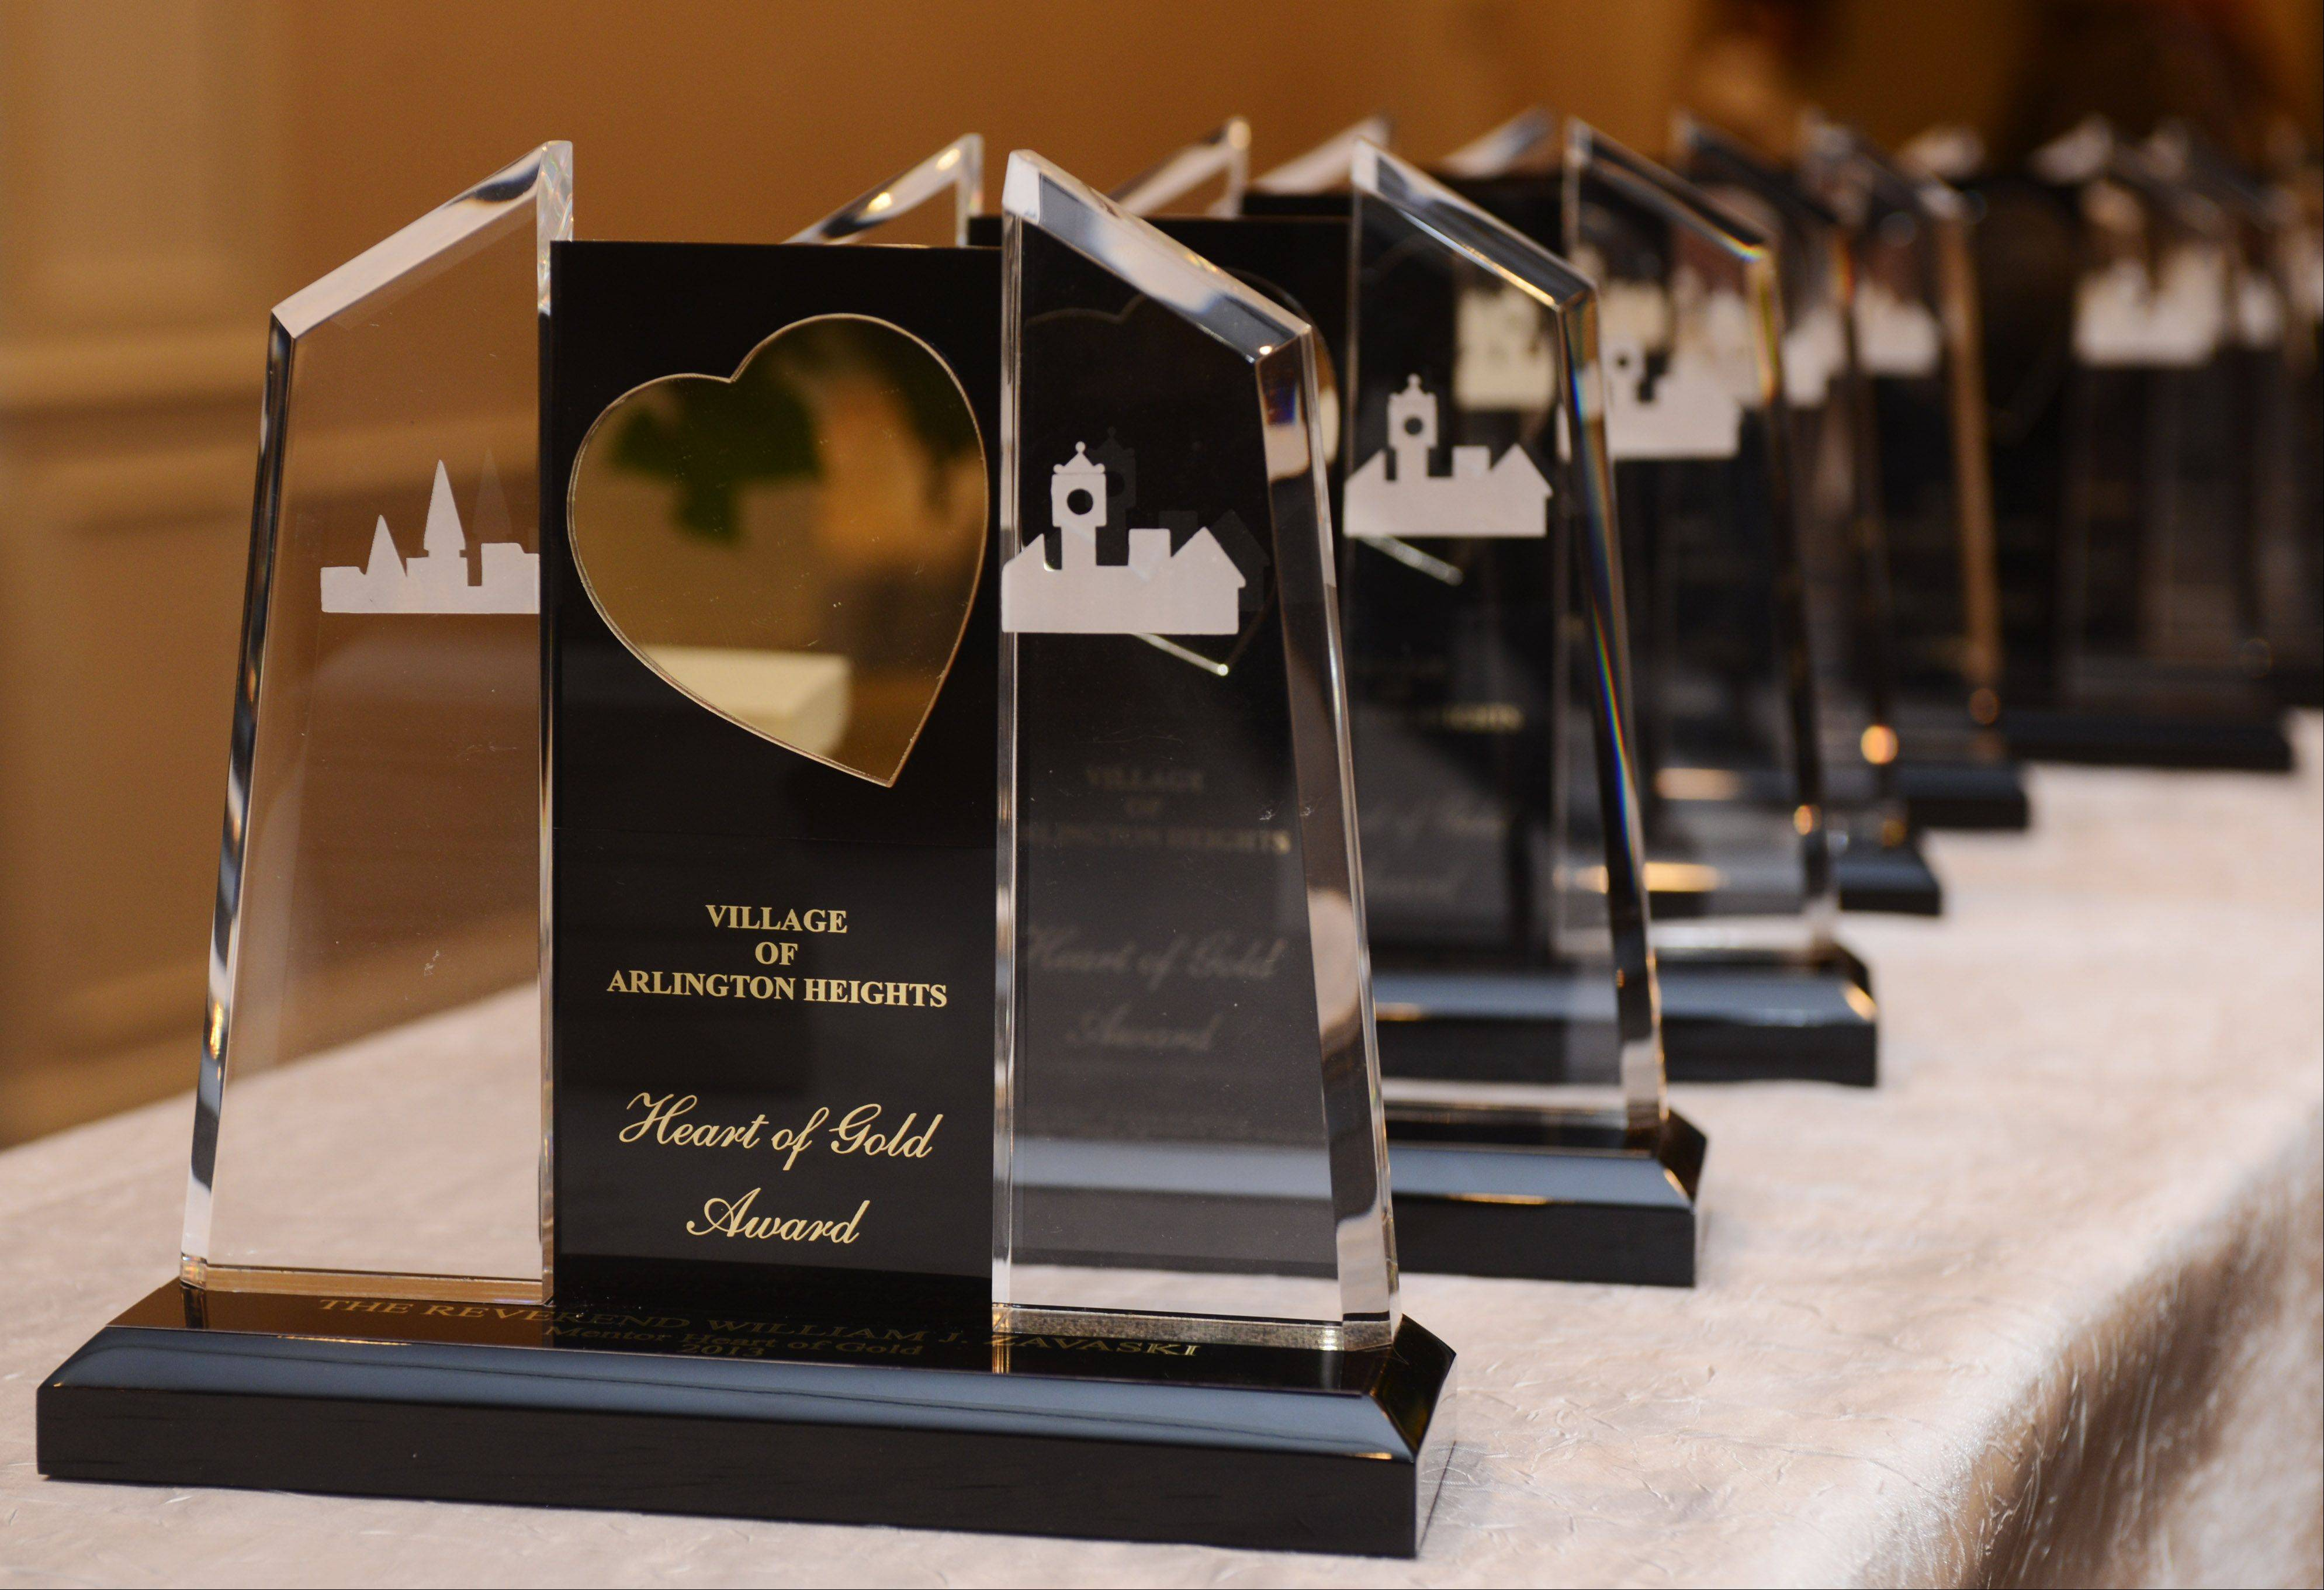 JOE LEWNARD/jlewnard@dailyherald.com Awards are lined up on the front table Saturday before the 2013 Hearts of Gold Awards Dinner.